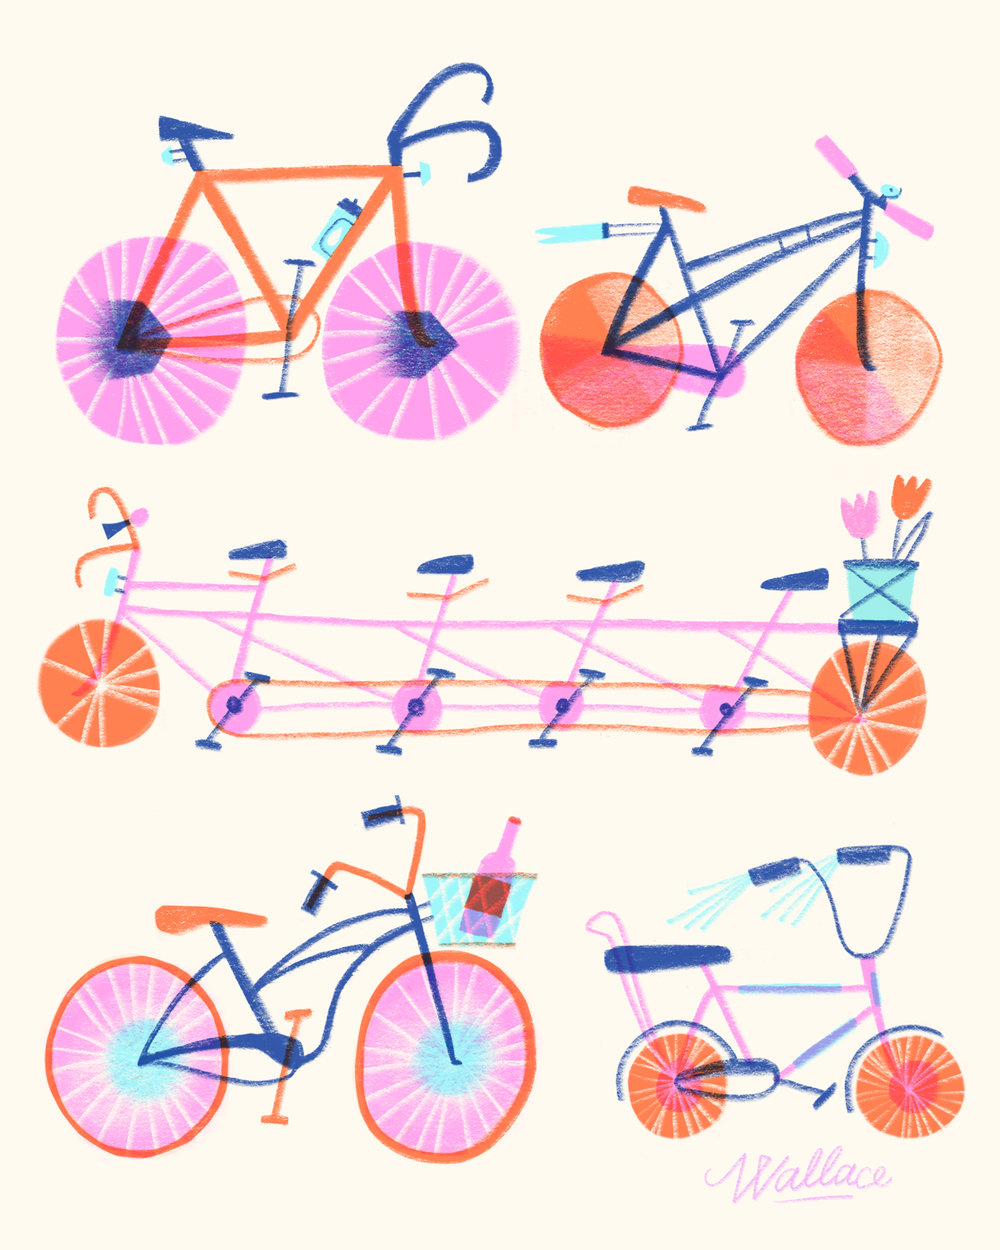 bikes-illustration-erin-wallace.jpg